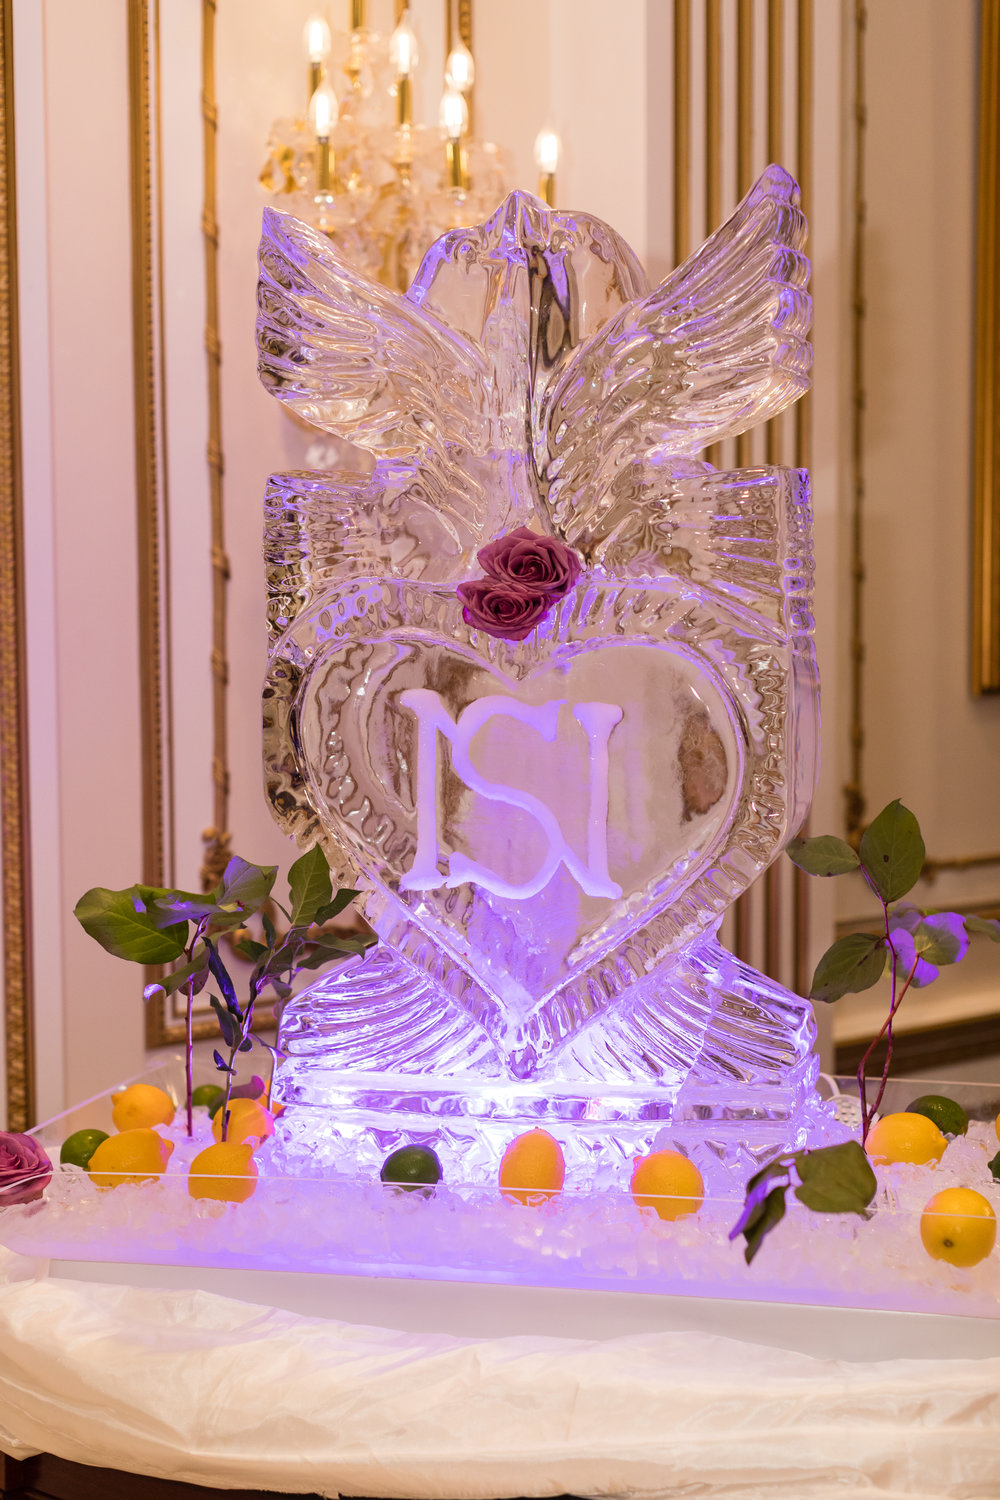 INDIAN WEDDING ICE SCULPTURE.jpg